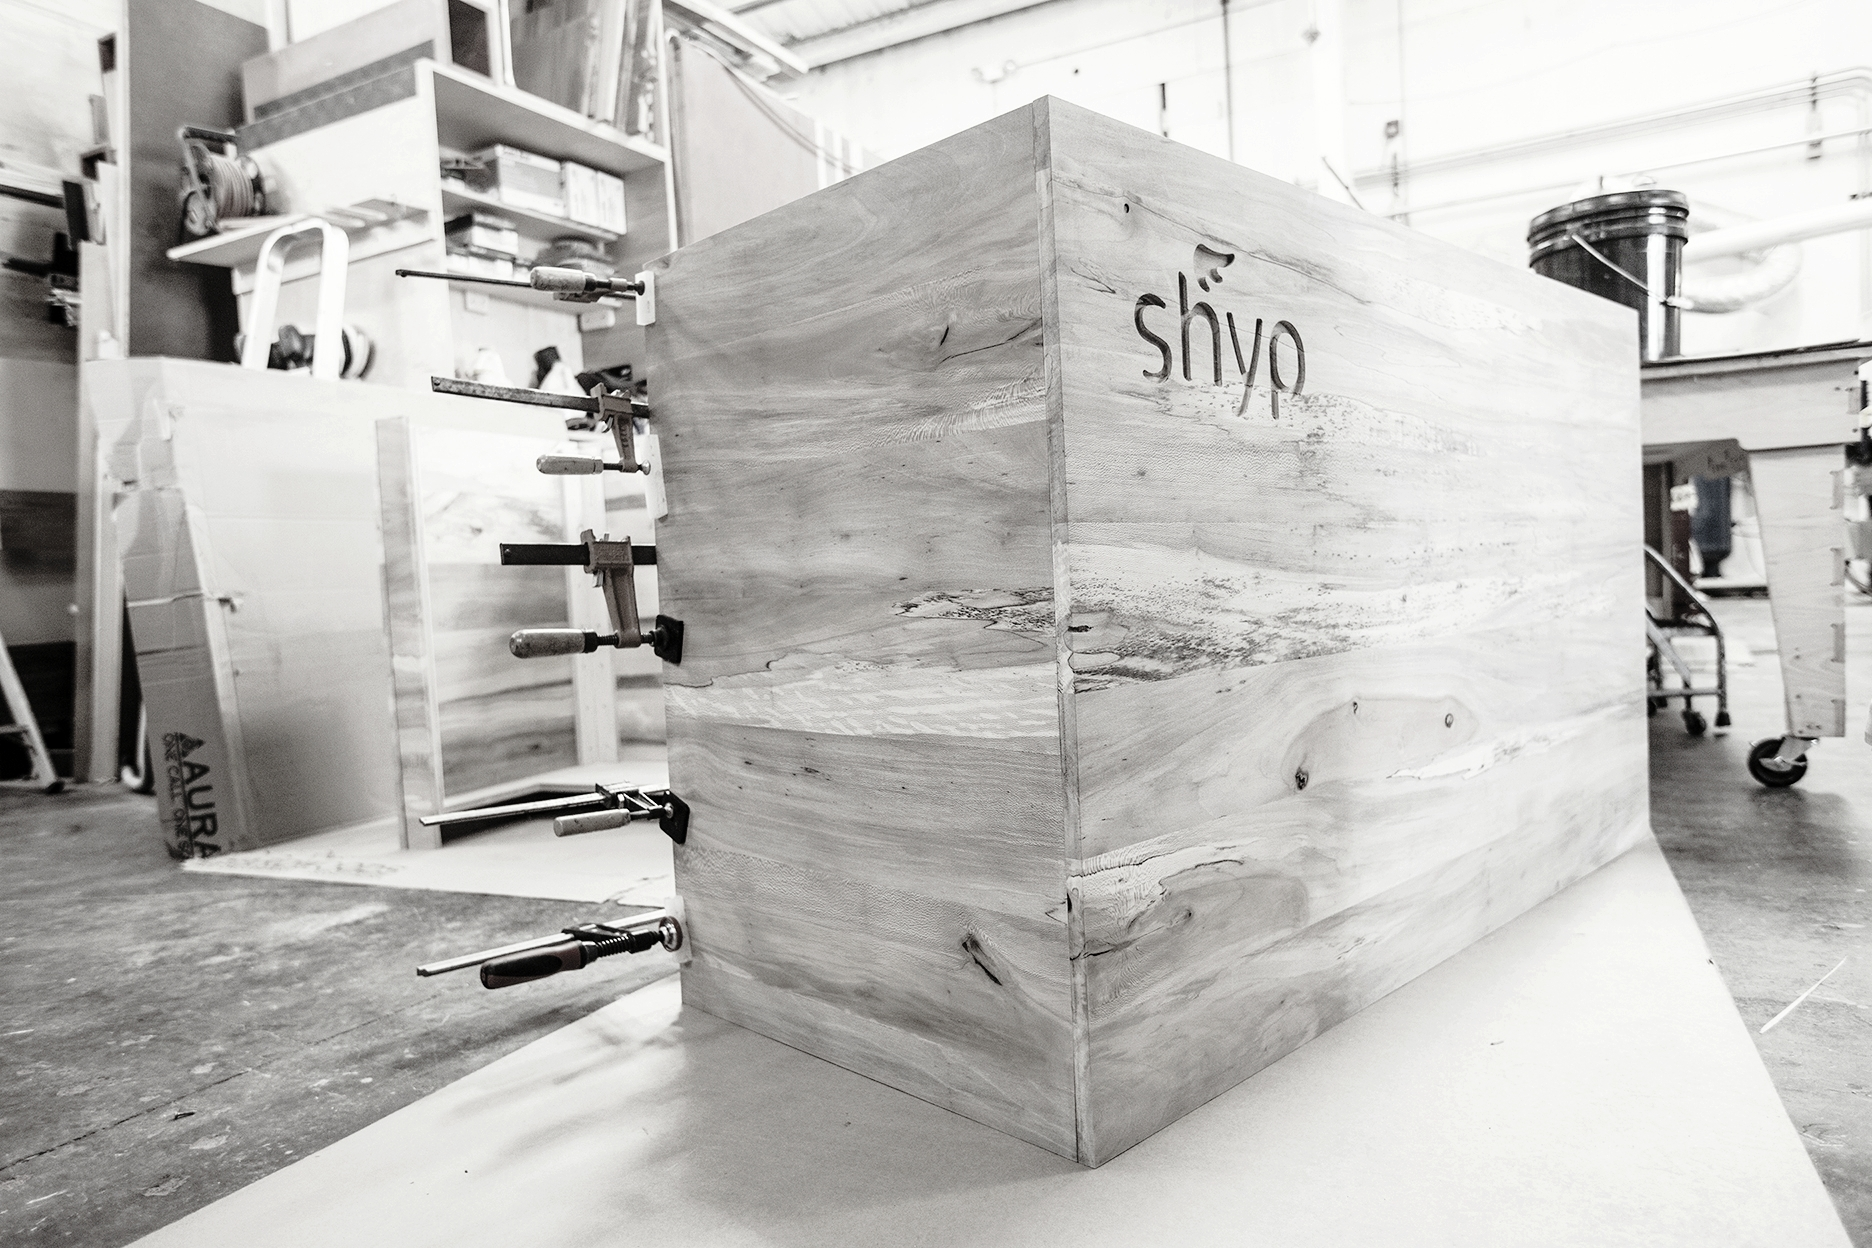 Our fabrication shop is tuned perfectly to realize our designs, mixing CNC joinery and traditional craftsmanship.